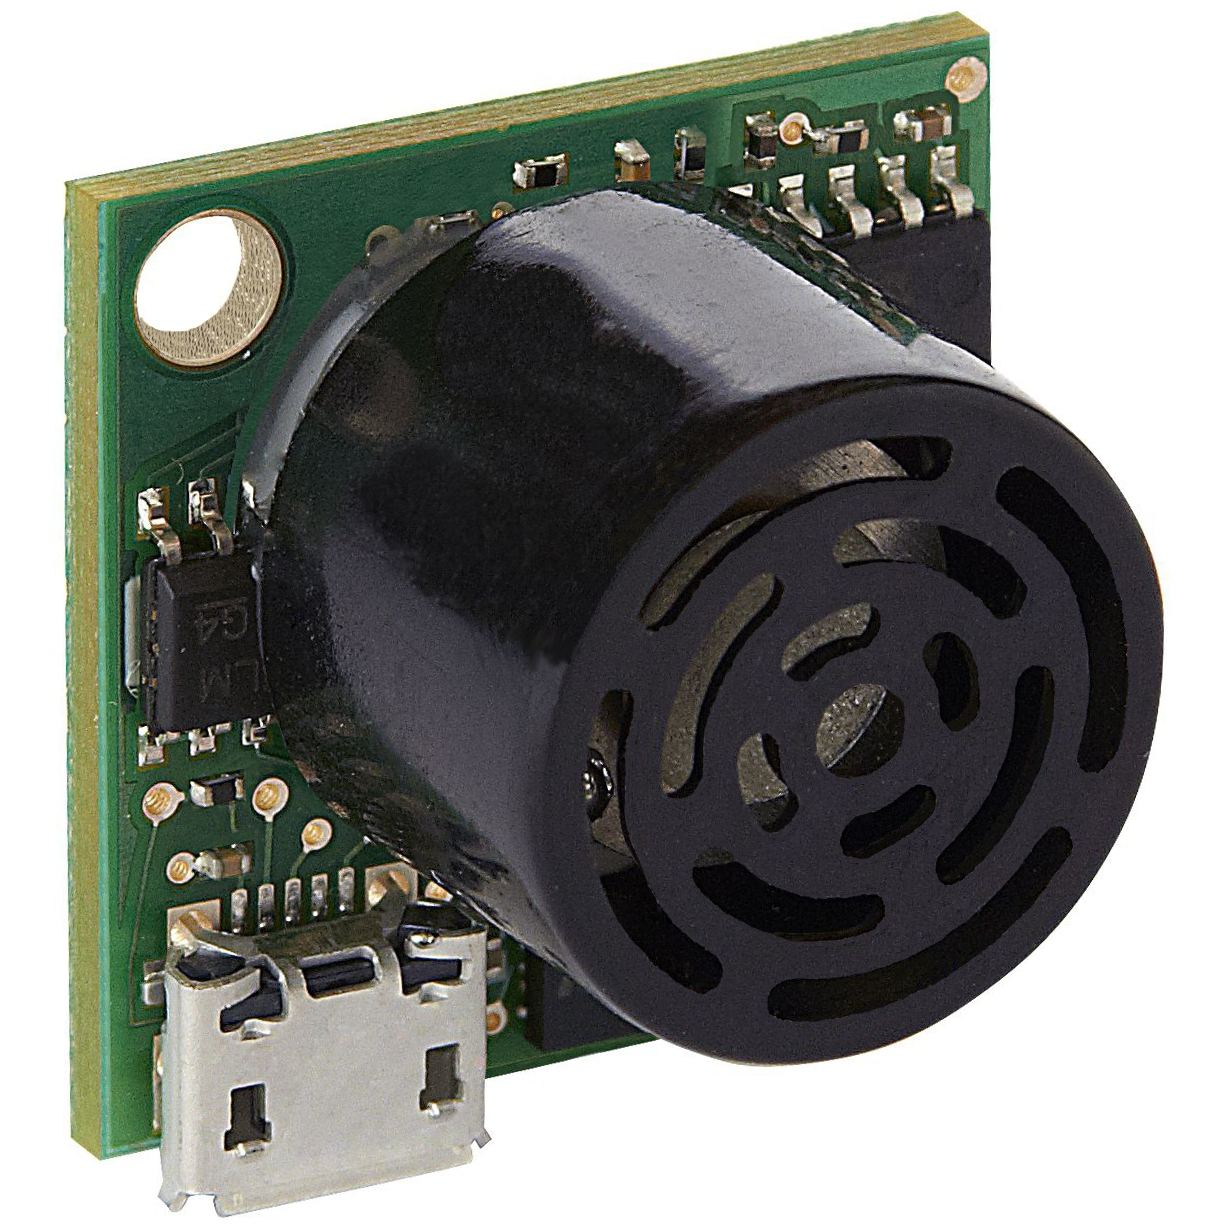 HRUSB-MaxSonar-EZ Ultrasonic Range Finder